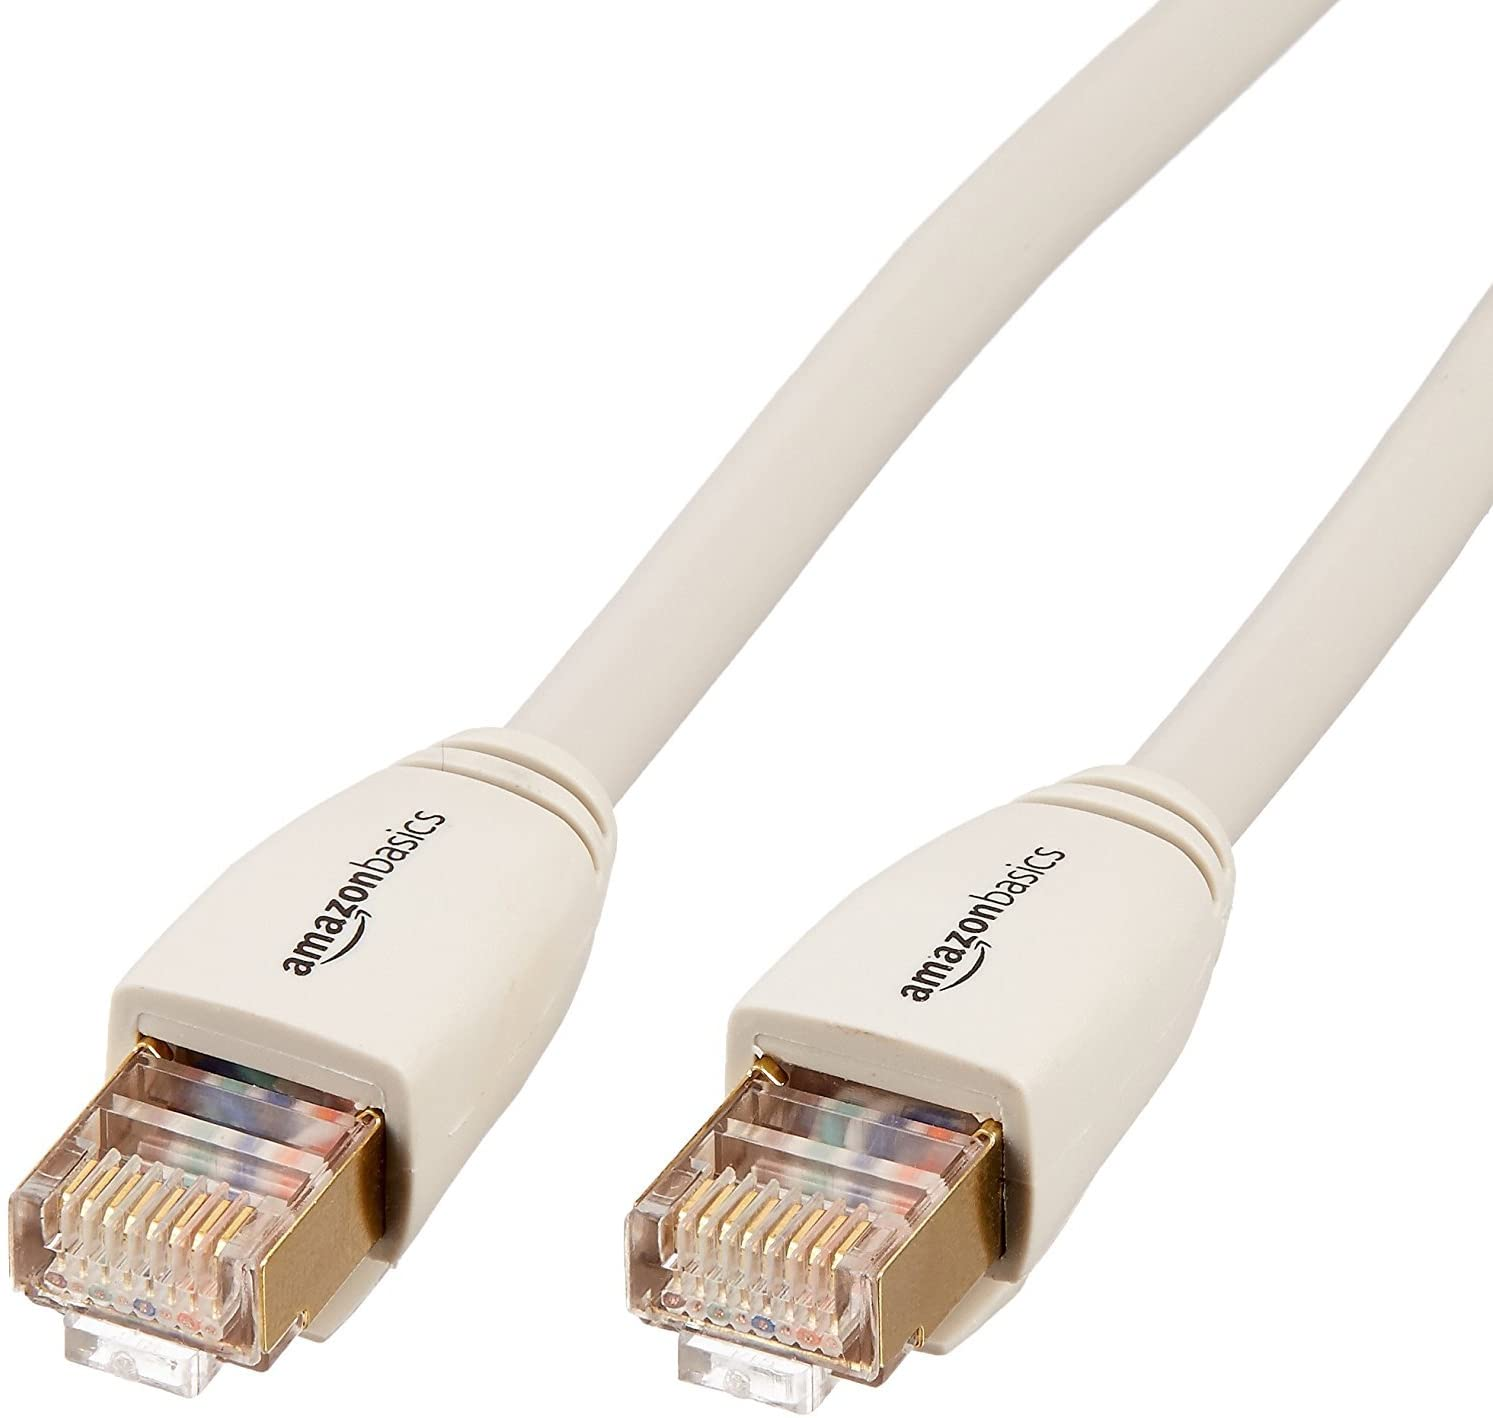 AmazonBasics RJ45 Cat7 Network Ethernet Patch Cable - 3-Foot, 5-Pack